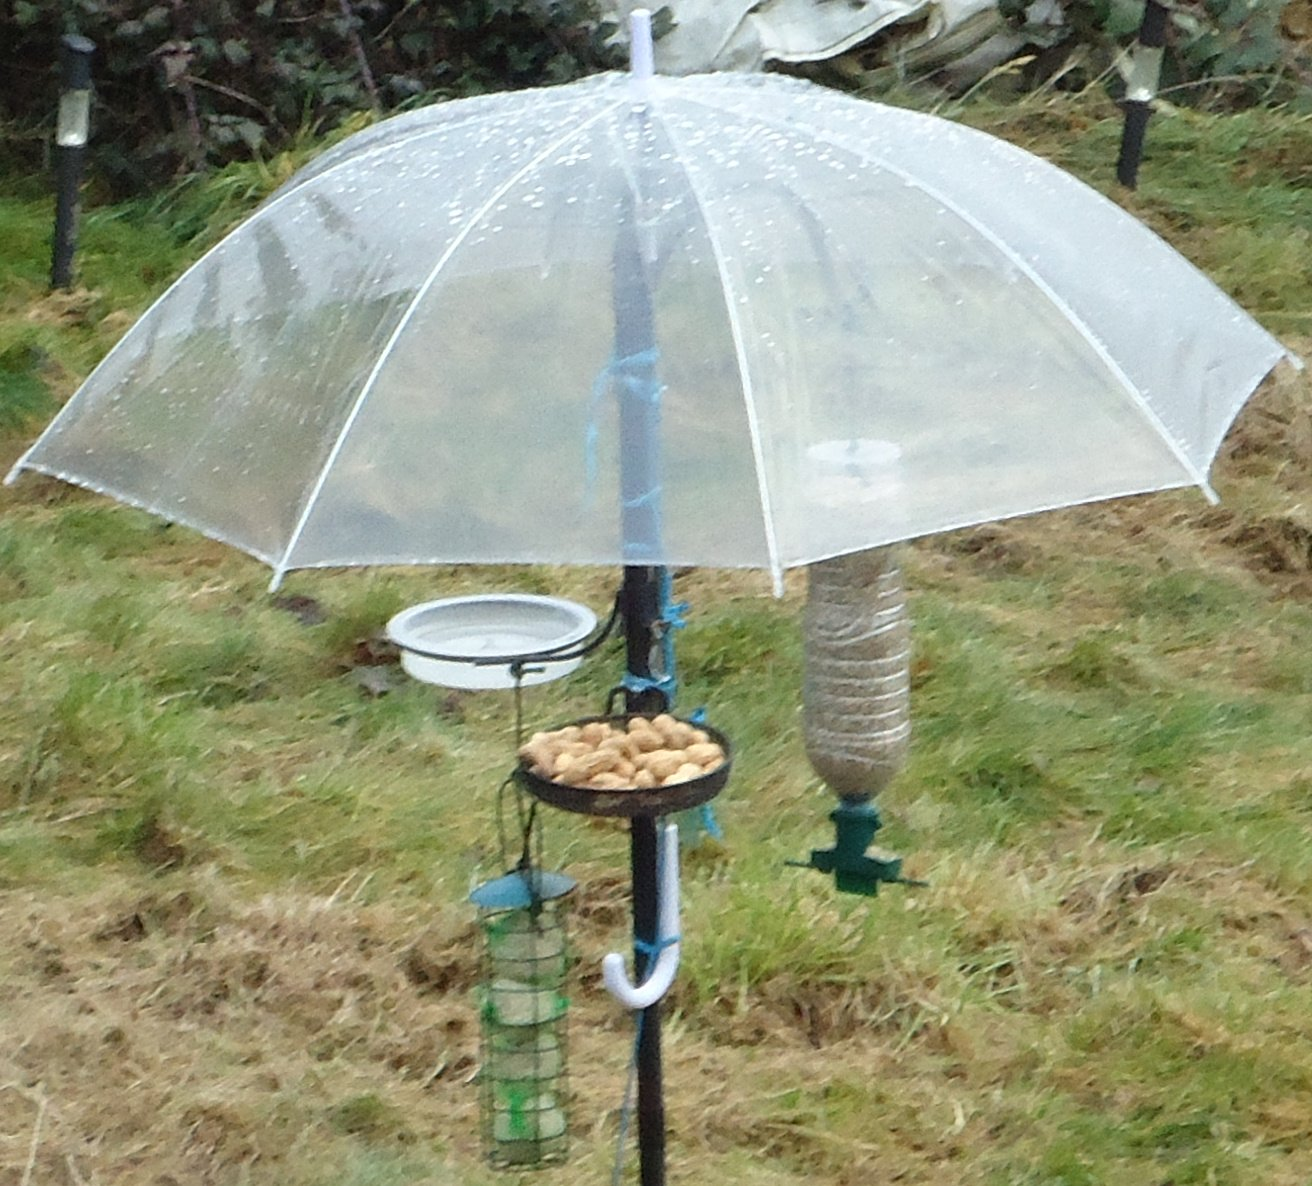 http://3.bp.blogspot.com/_-VCvZFCV5hI/TSB_m6lVt-I/AAAAAAAAD7w/_mM1H5vQ82w/s1600/Bird%20Feeder%20with%20Umbrella.jpg